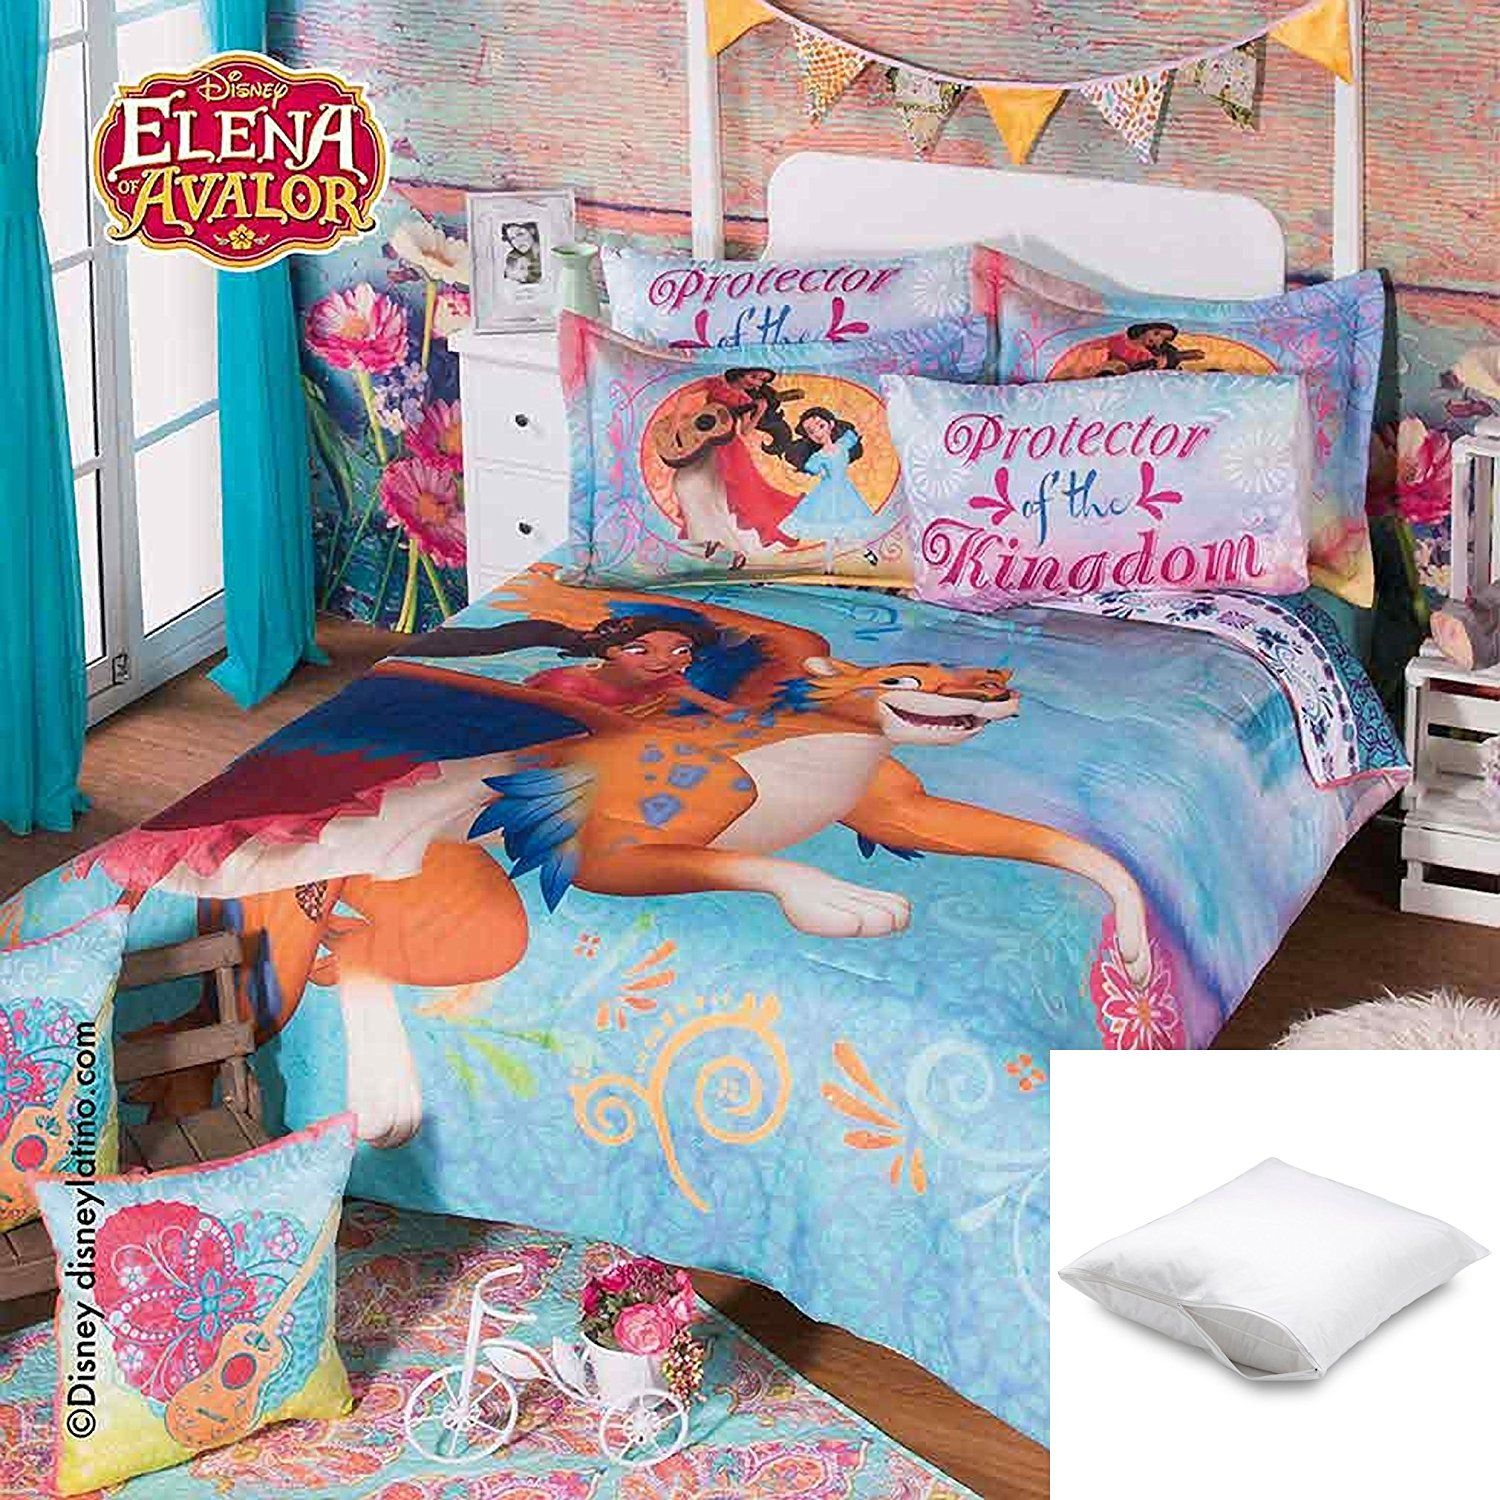 new disney collection girls princess elena of avalor fullsize bedding 9 piece set 1 x comforter 2 x shams 2 x decorative toss pillows 1 x flat sheet 1 x